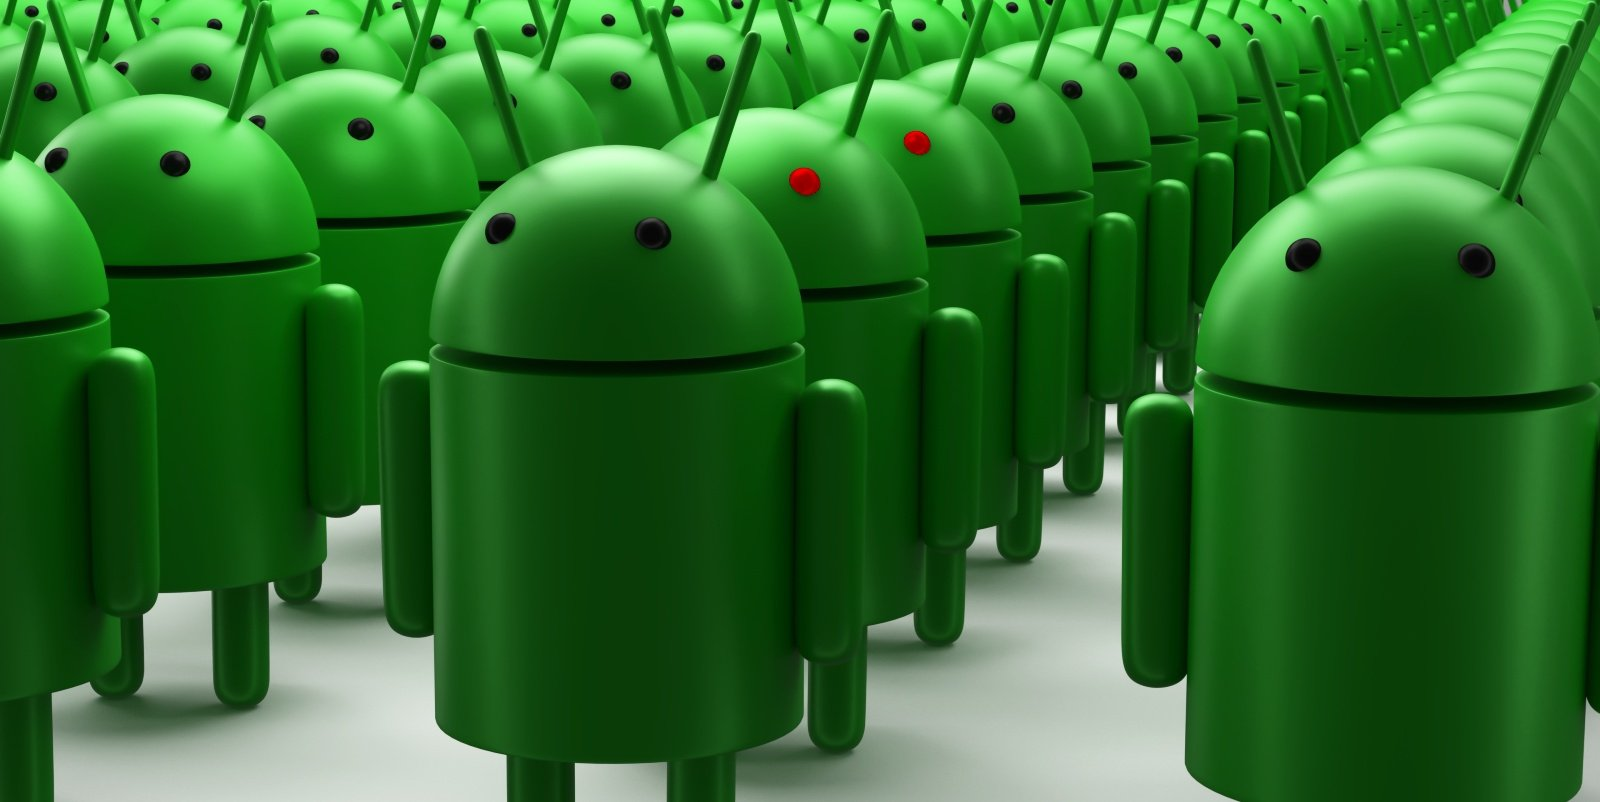 Joker Malware Infects Over 500,000 Huawei Android Devices